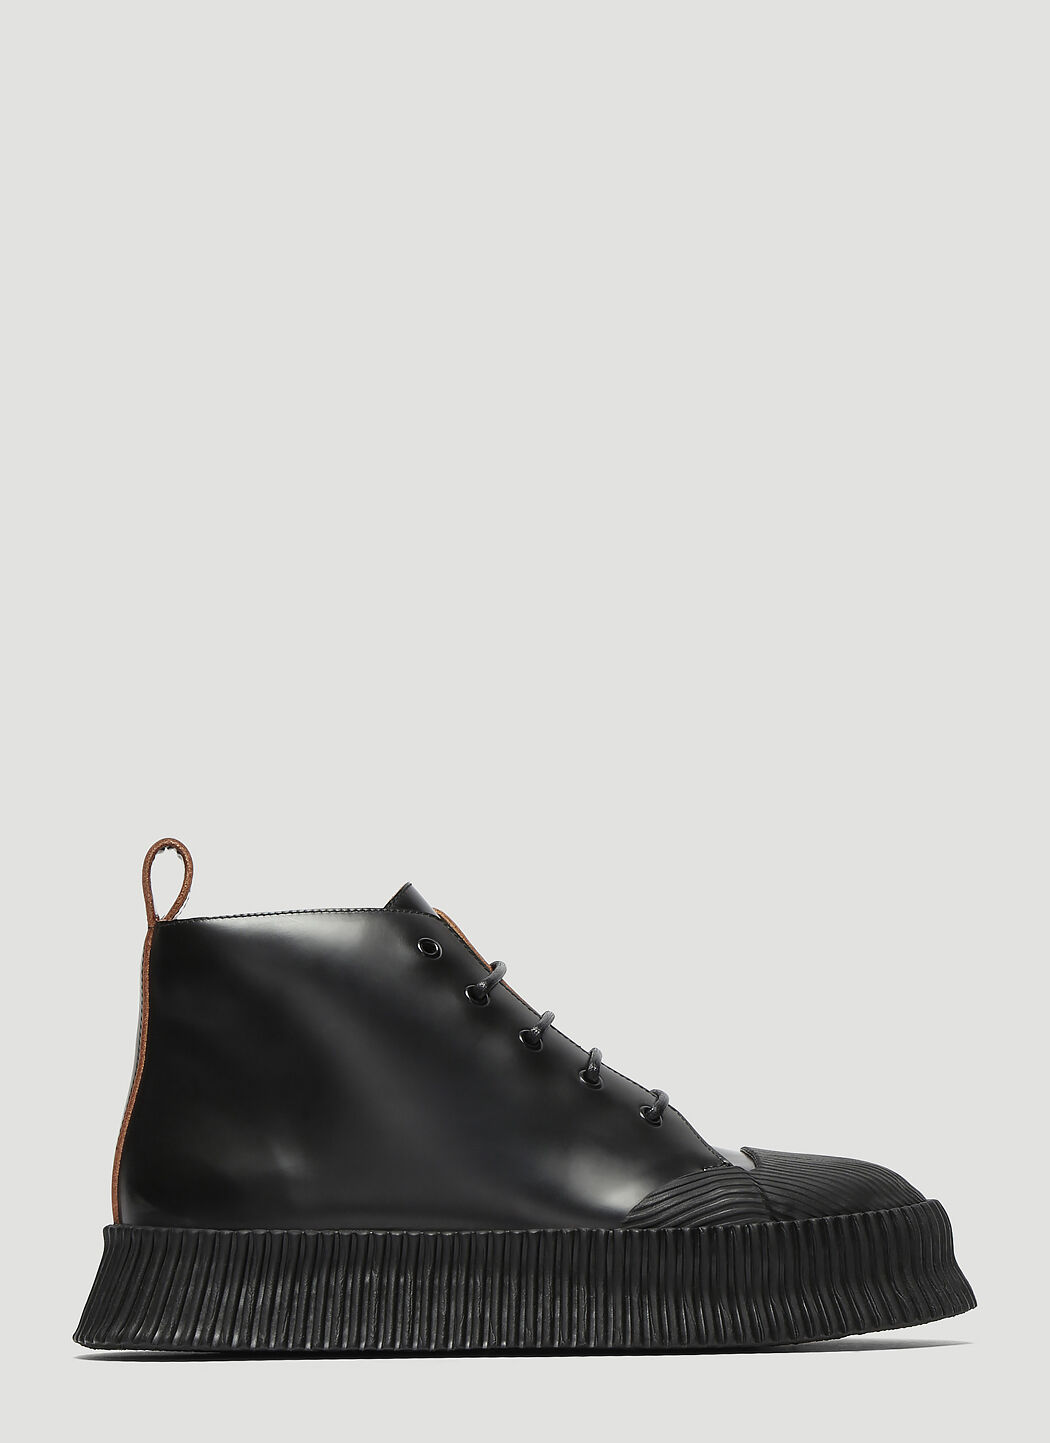 Jil Sander Vulcanized Leather Boots 2A83gS